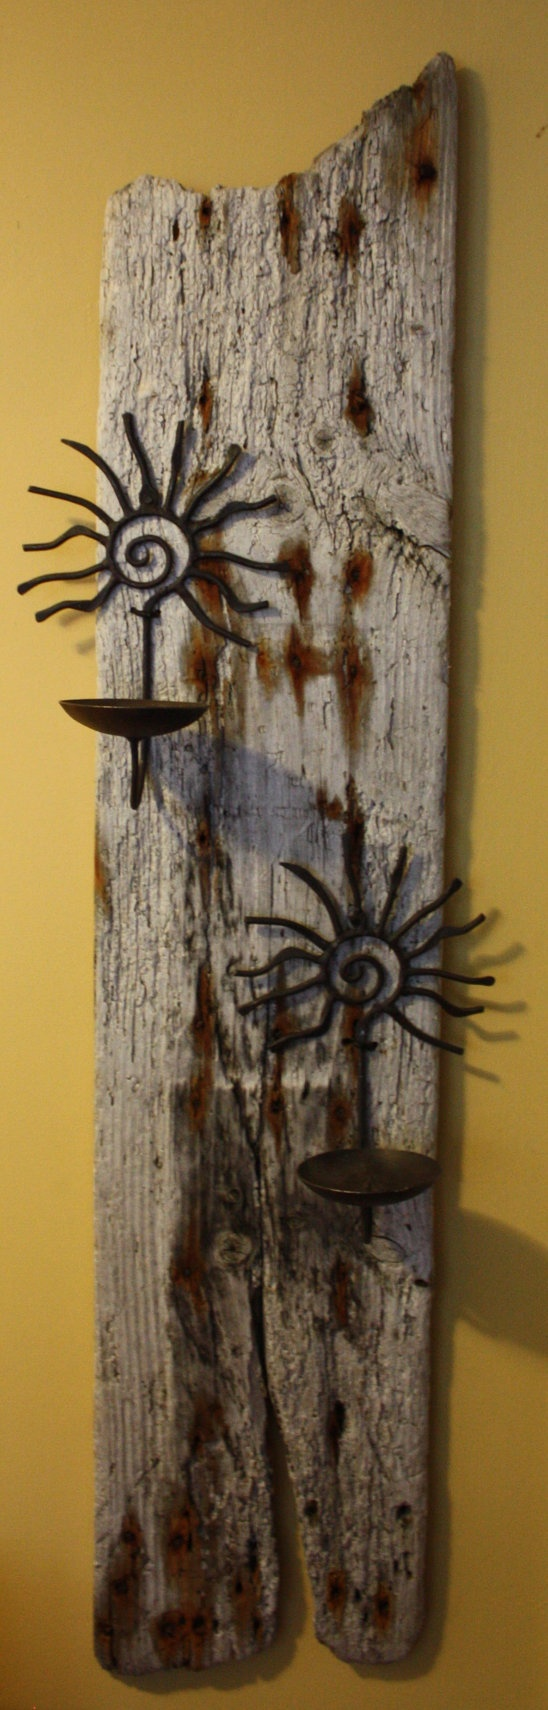 Wooden candle holders crafts - A Hand Made Drift Wood Candle Holder